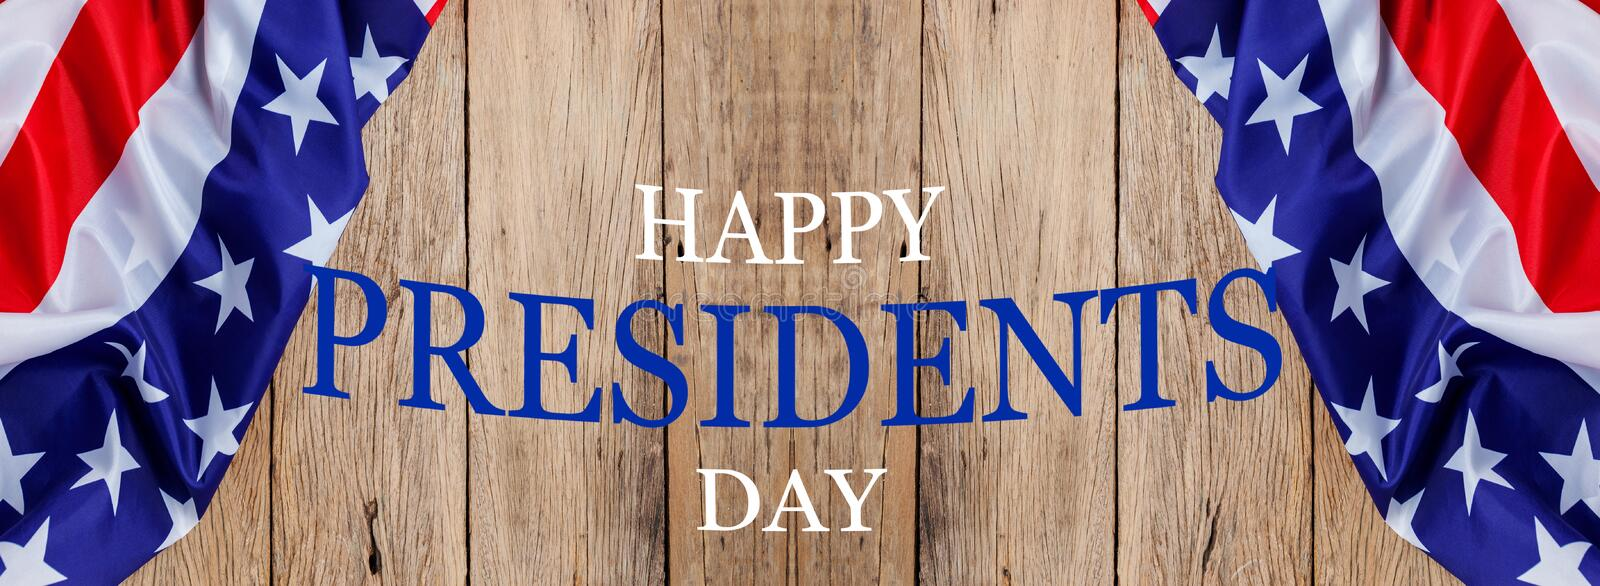 Happy Presidents` Day text on wooden with flag of the United States Border royalty free stock photos